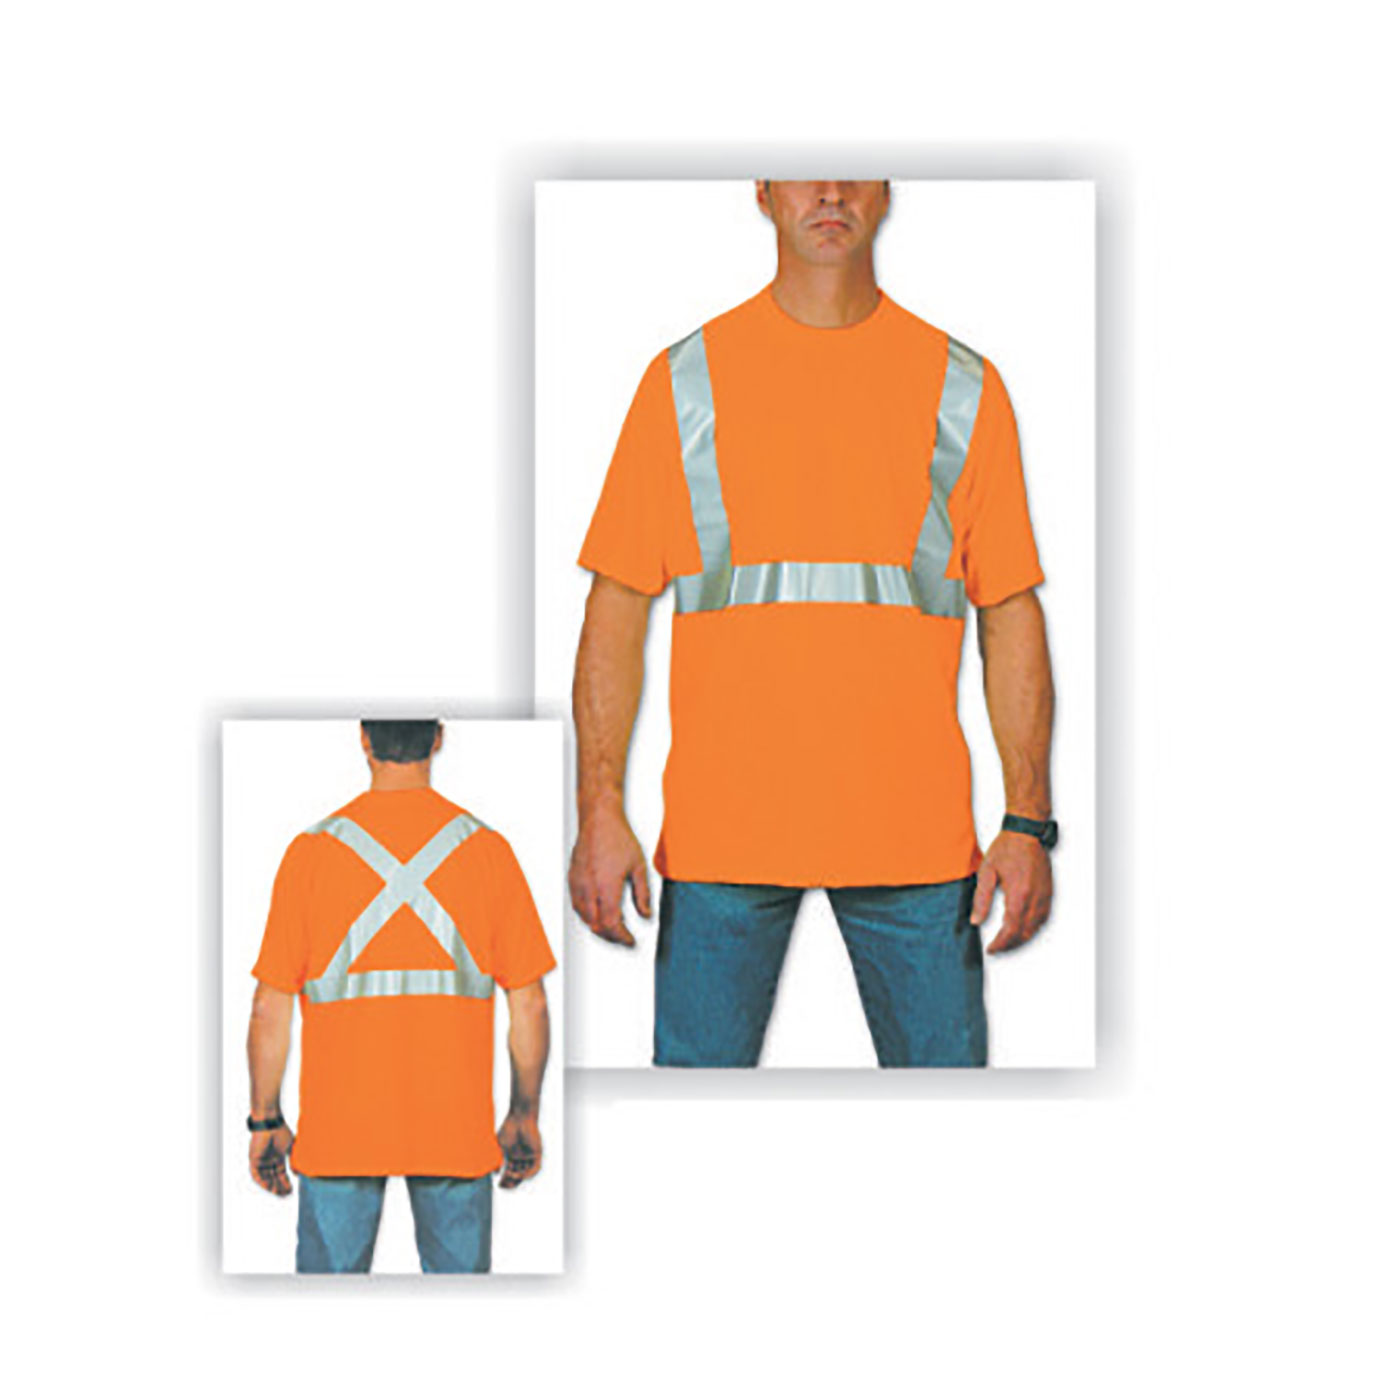 Workhorse Traffic Shirt (Certified)